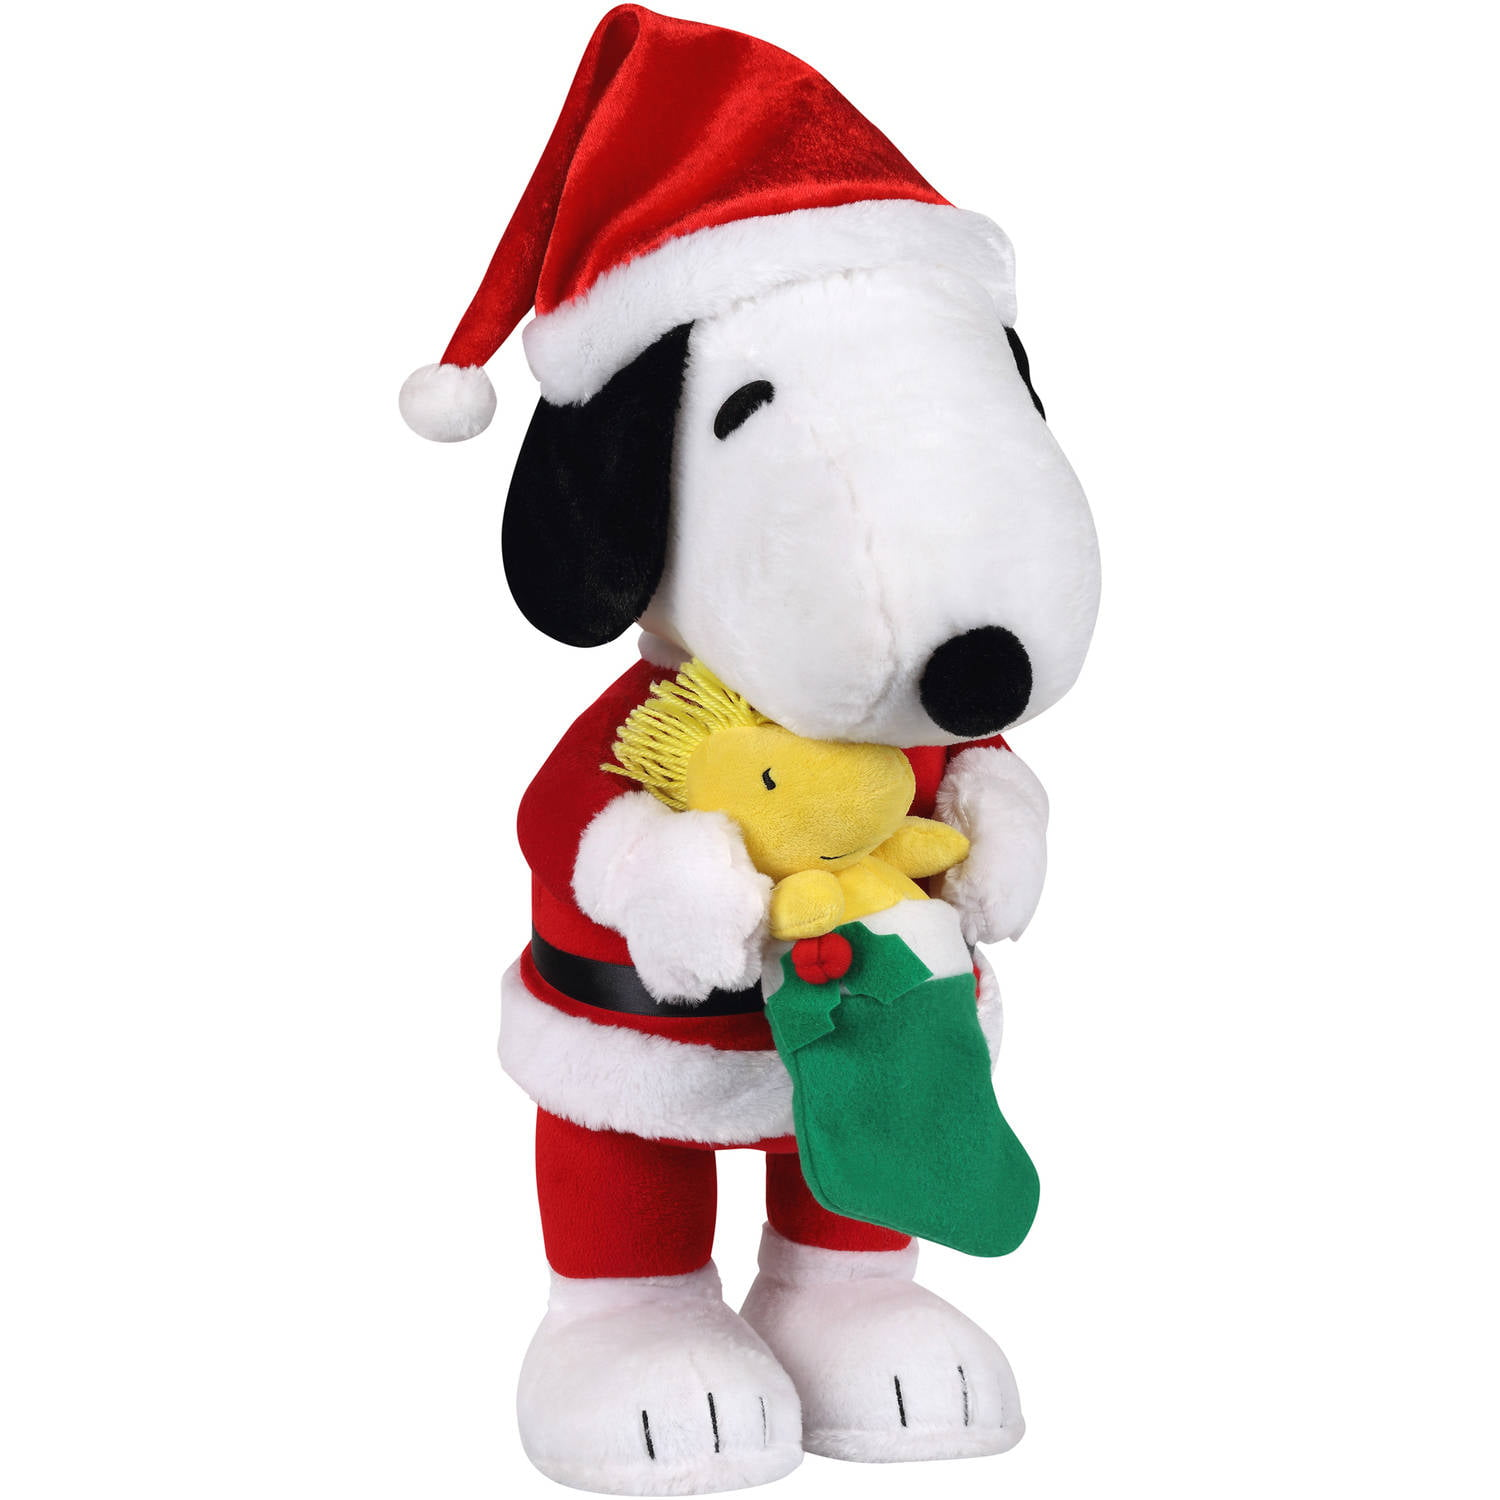 Snoopy outdoor christmas decorations - Snoopy Outdoor Christmas Decorations 41